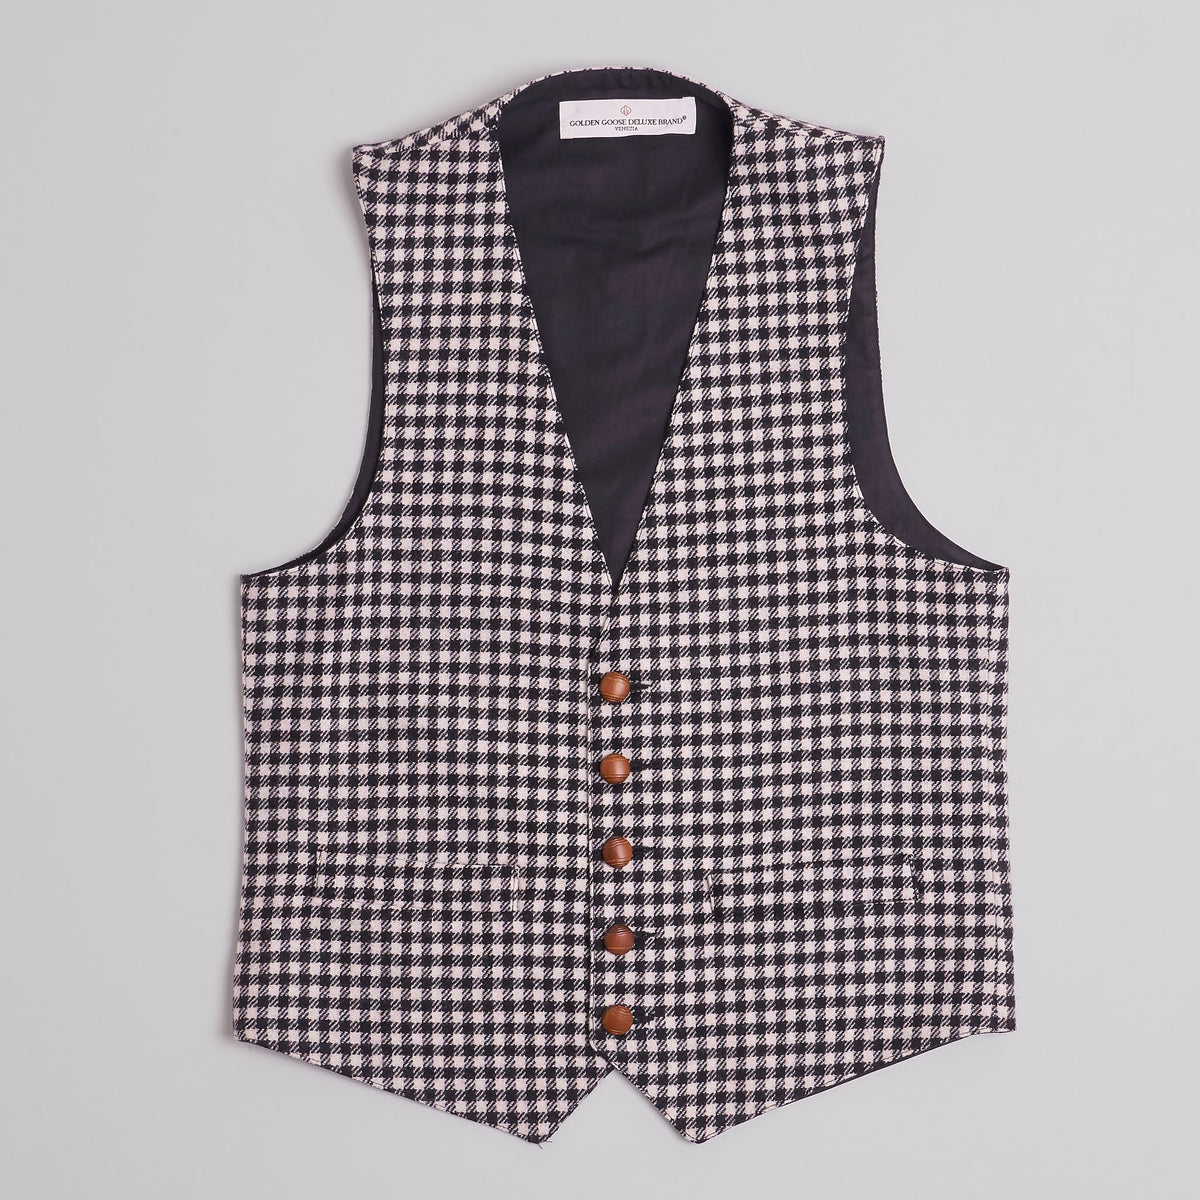 Golden Goose Deluxe Brand Wool Waist Coat